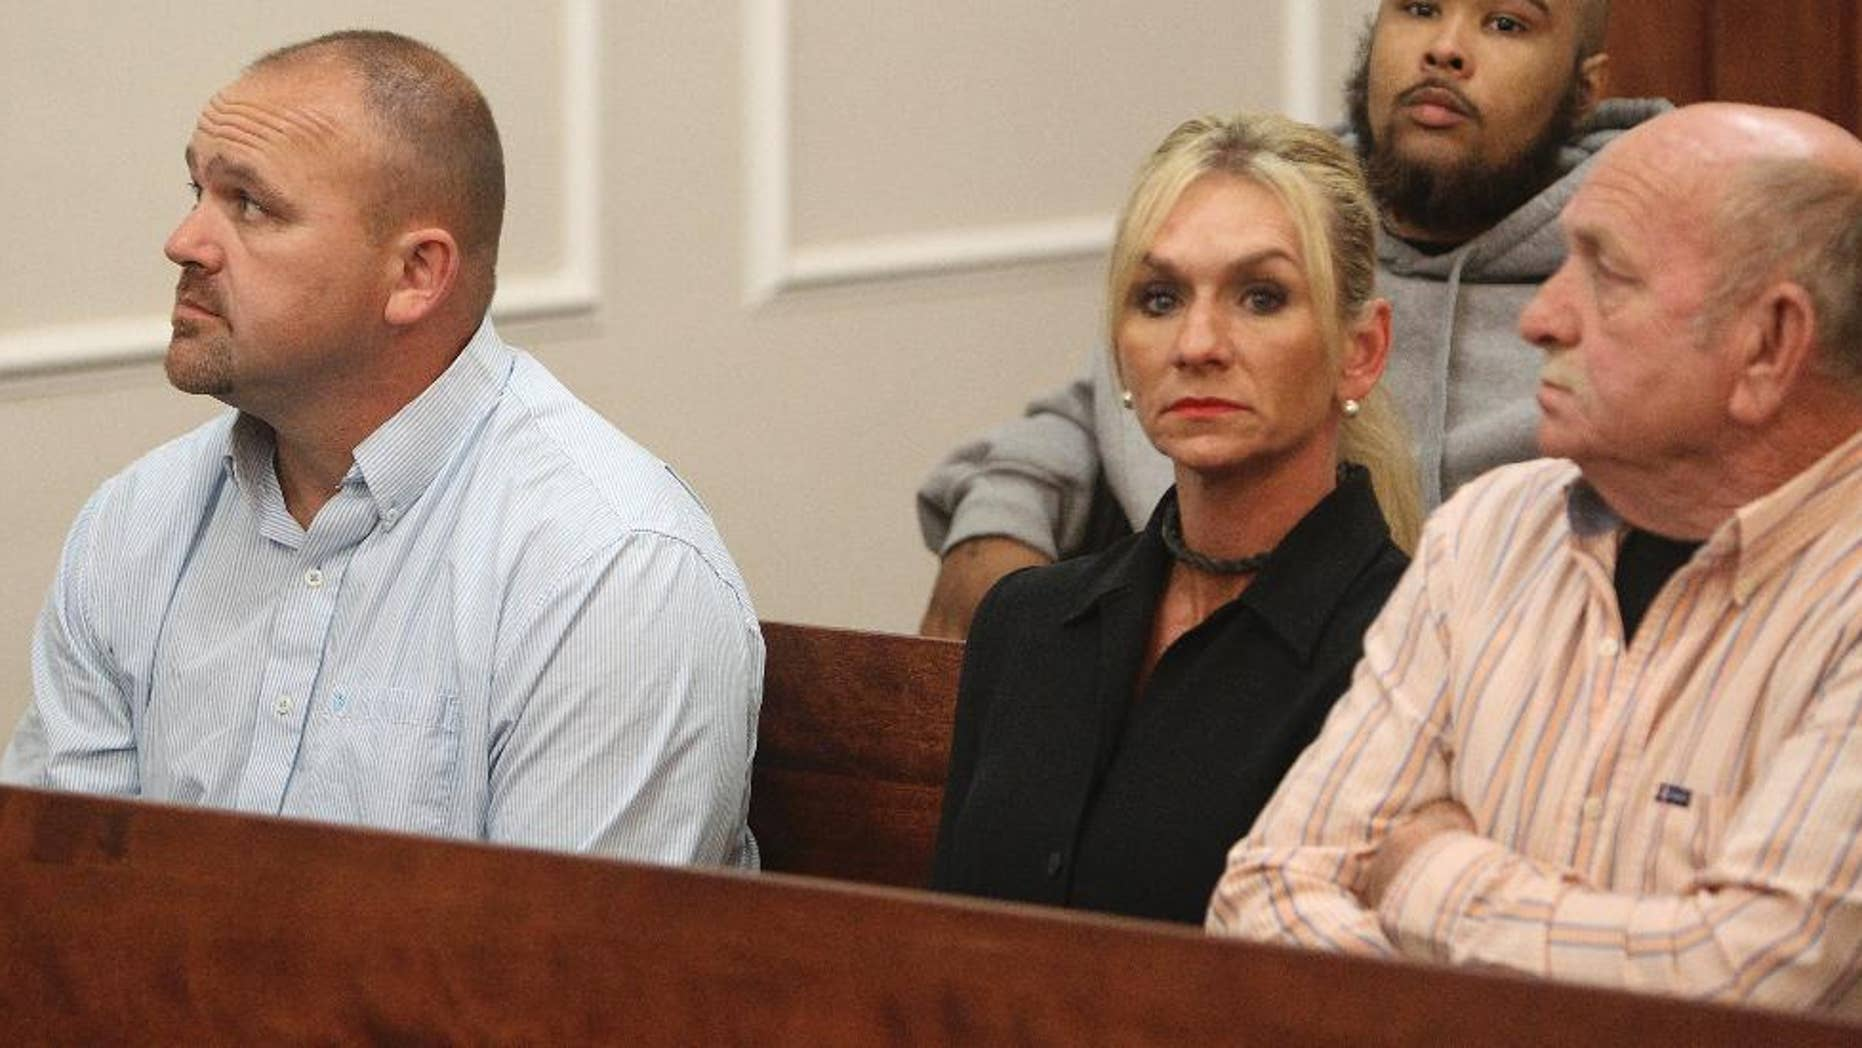 "From left, Gilbert ""Toby"" Curtsinger, his wife, Julie Curtsinger, and her father Robert McKinney sit together in Franklin County Circuit Court in Frankfort, Ky on Friday, May 22, 2015. The Curtsingers pleaded not guilty to multiple charges Friday. Both are charged with engaging in organized crime.   McKinney, also facing charges, pleaded not guilty  (Michael Clevenger/The Courier-Journal via AP) NO SALES; MAGS OUT; NO ARCHIVE; MANDATORY CREDIT"